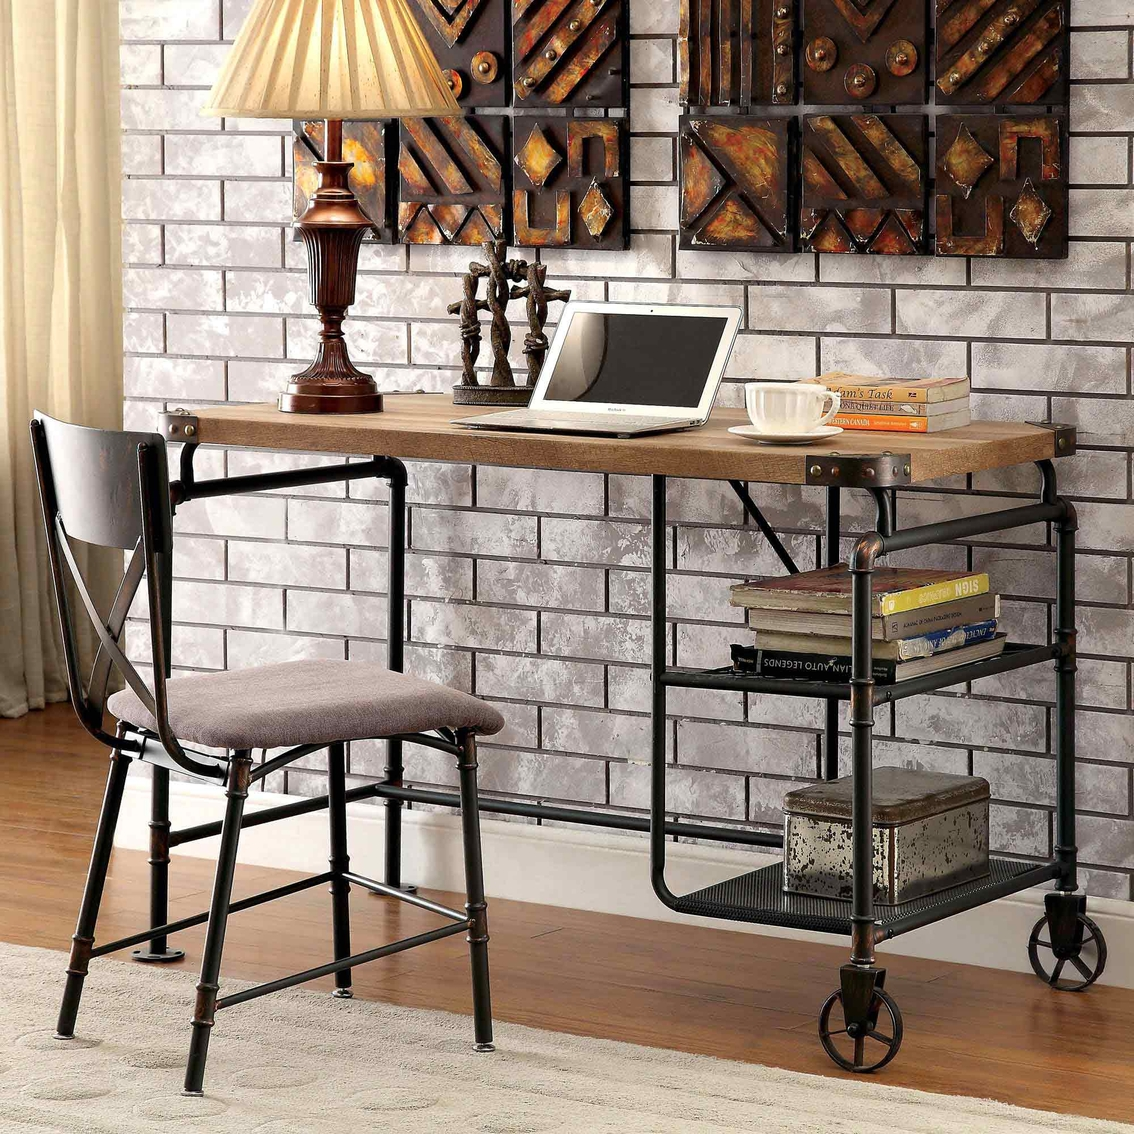 Oversized Wood And Metal Laptop Table: Furniture Of America Metal Desk With Wheels